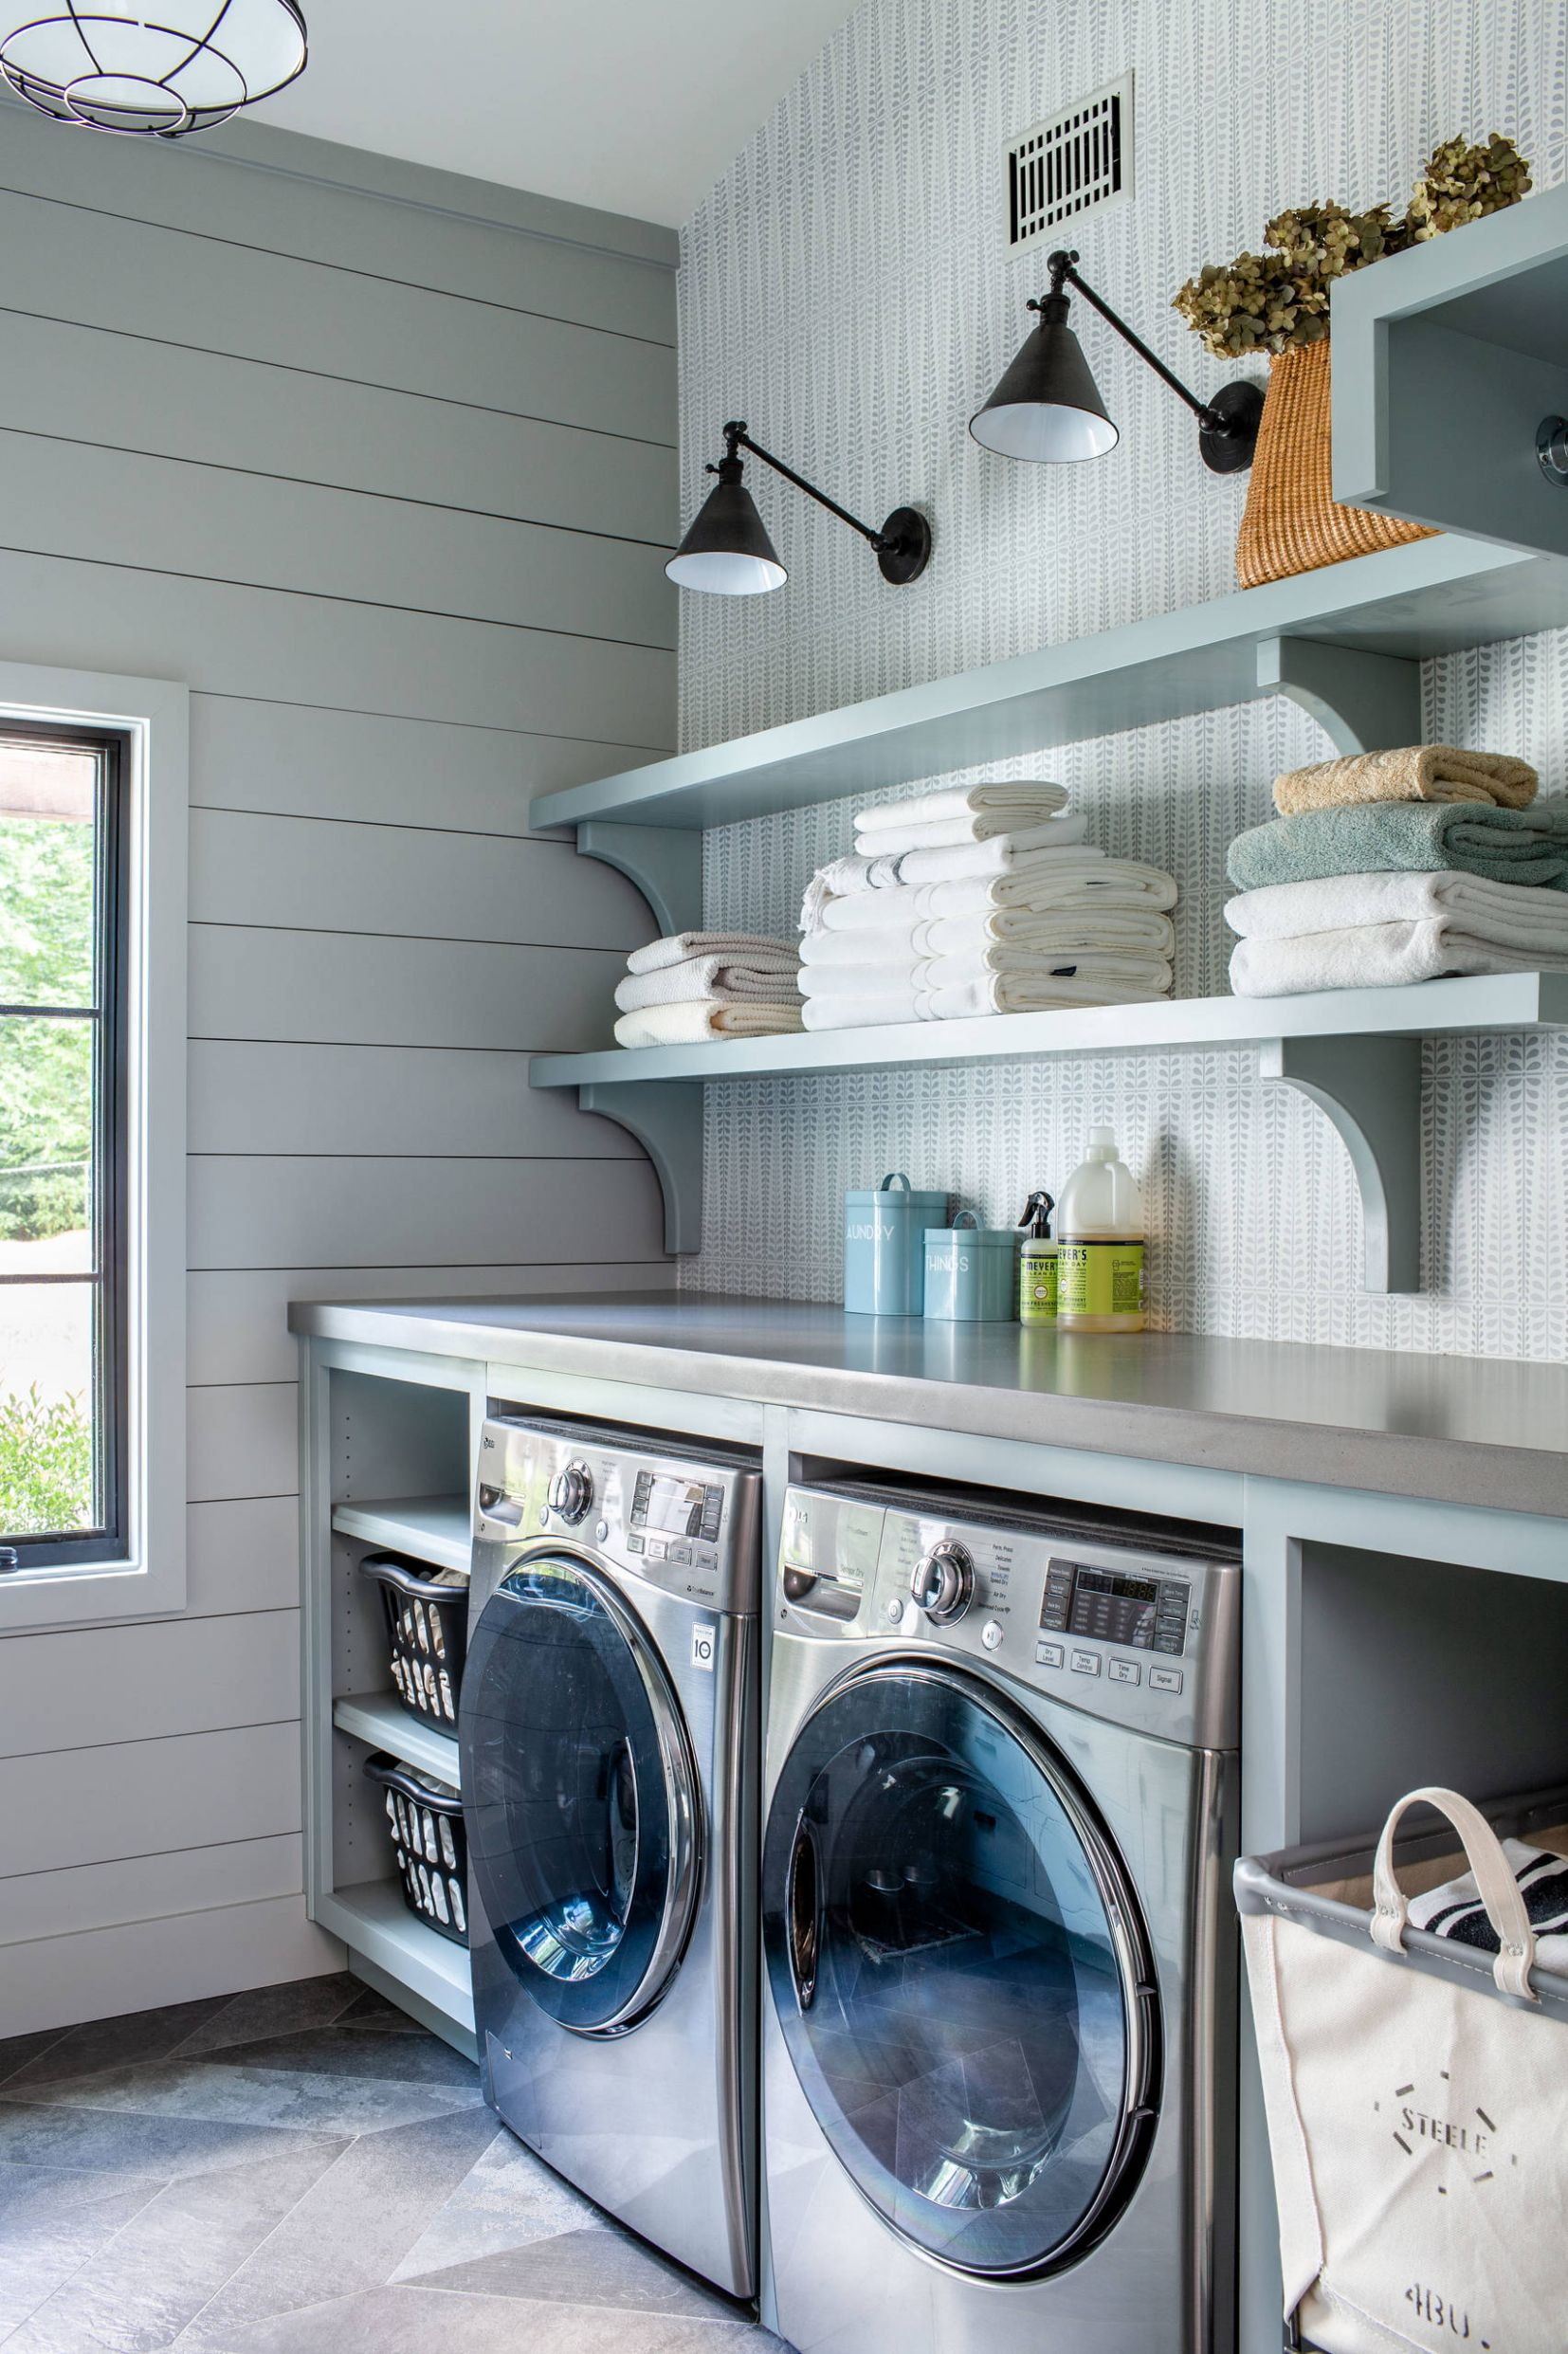 8 Beautiful Laundry Room Pictures & Ideas | Houzz